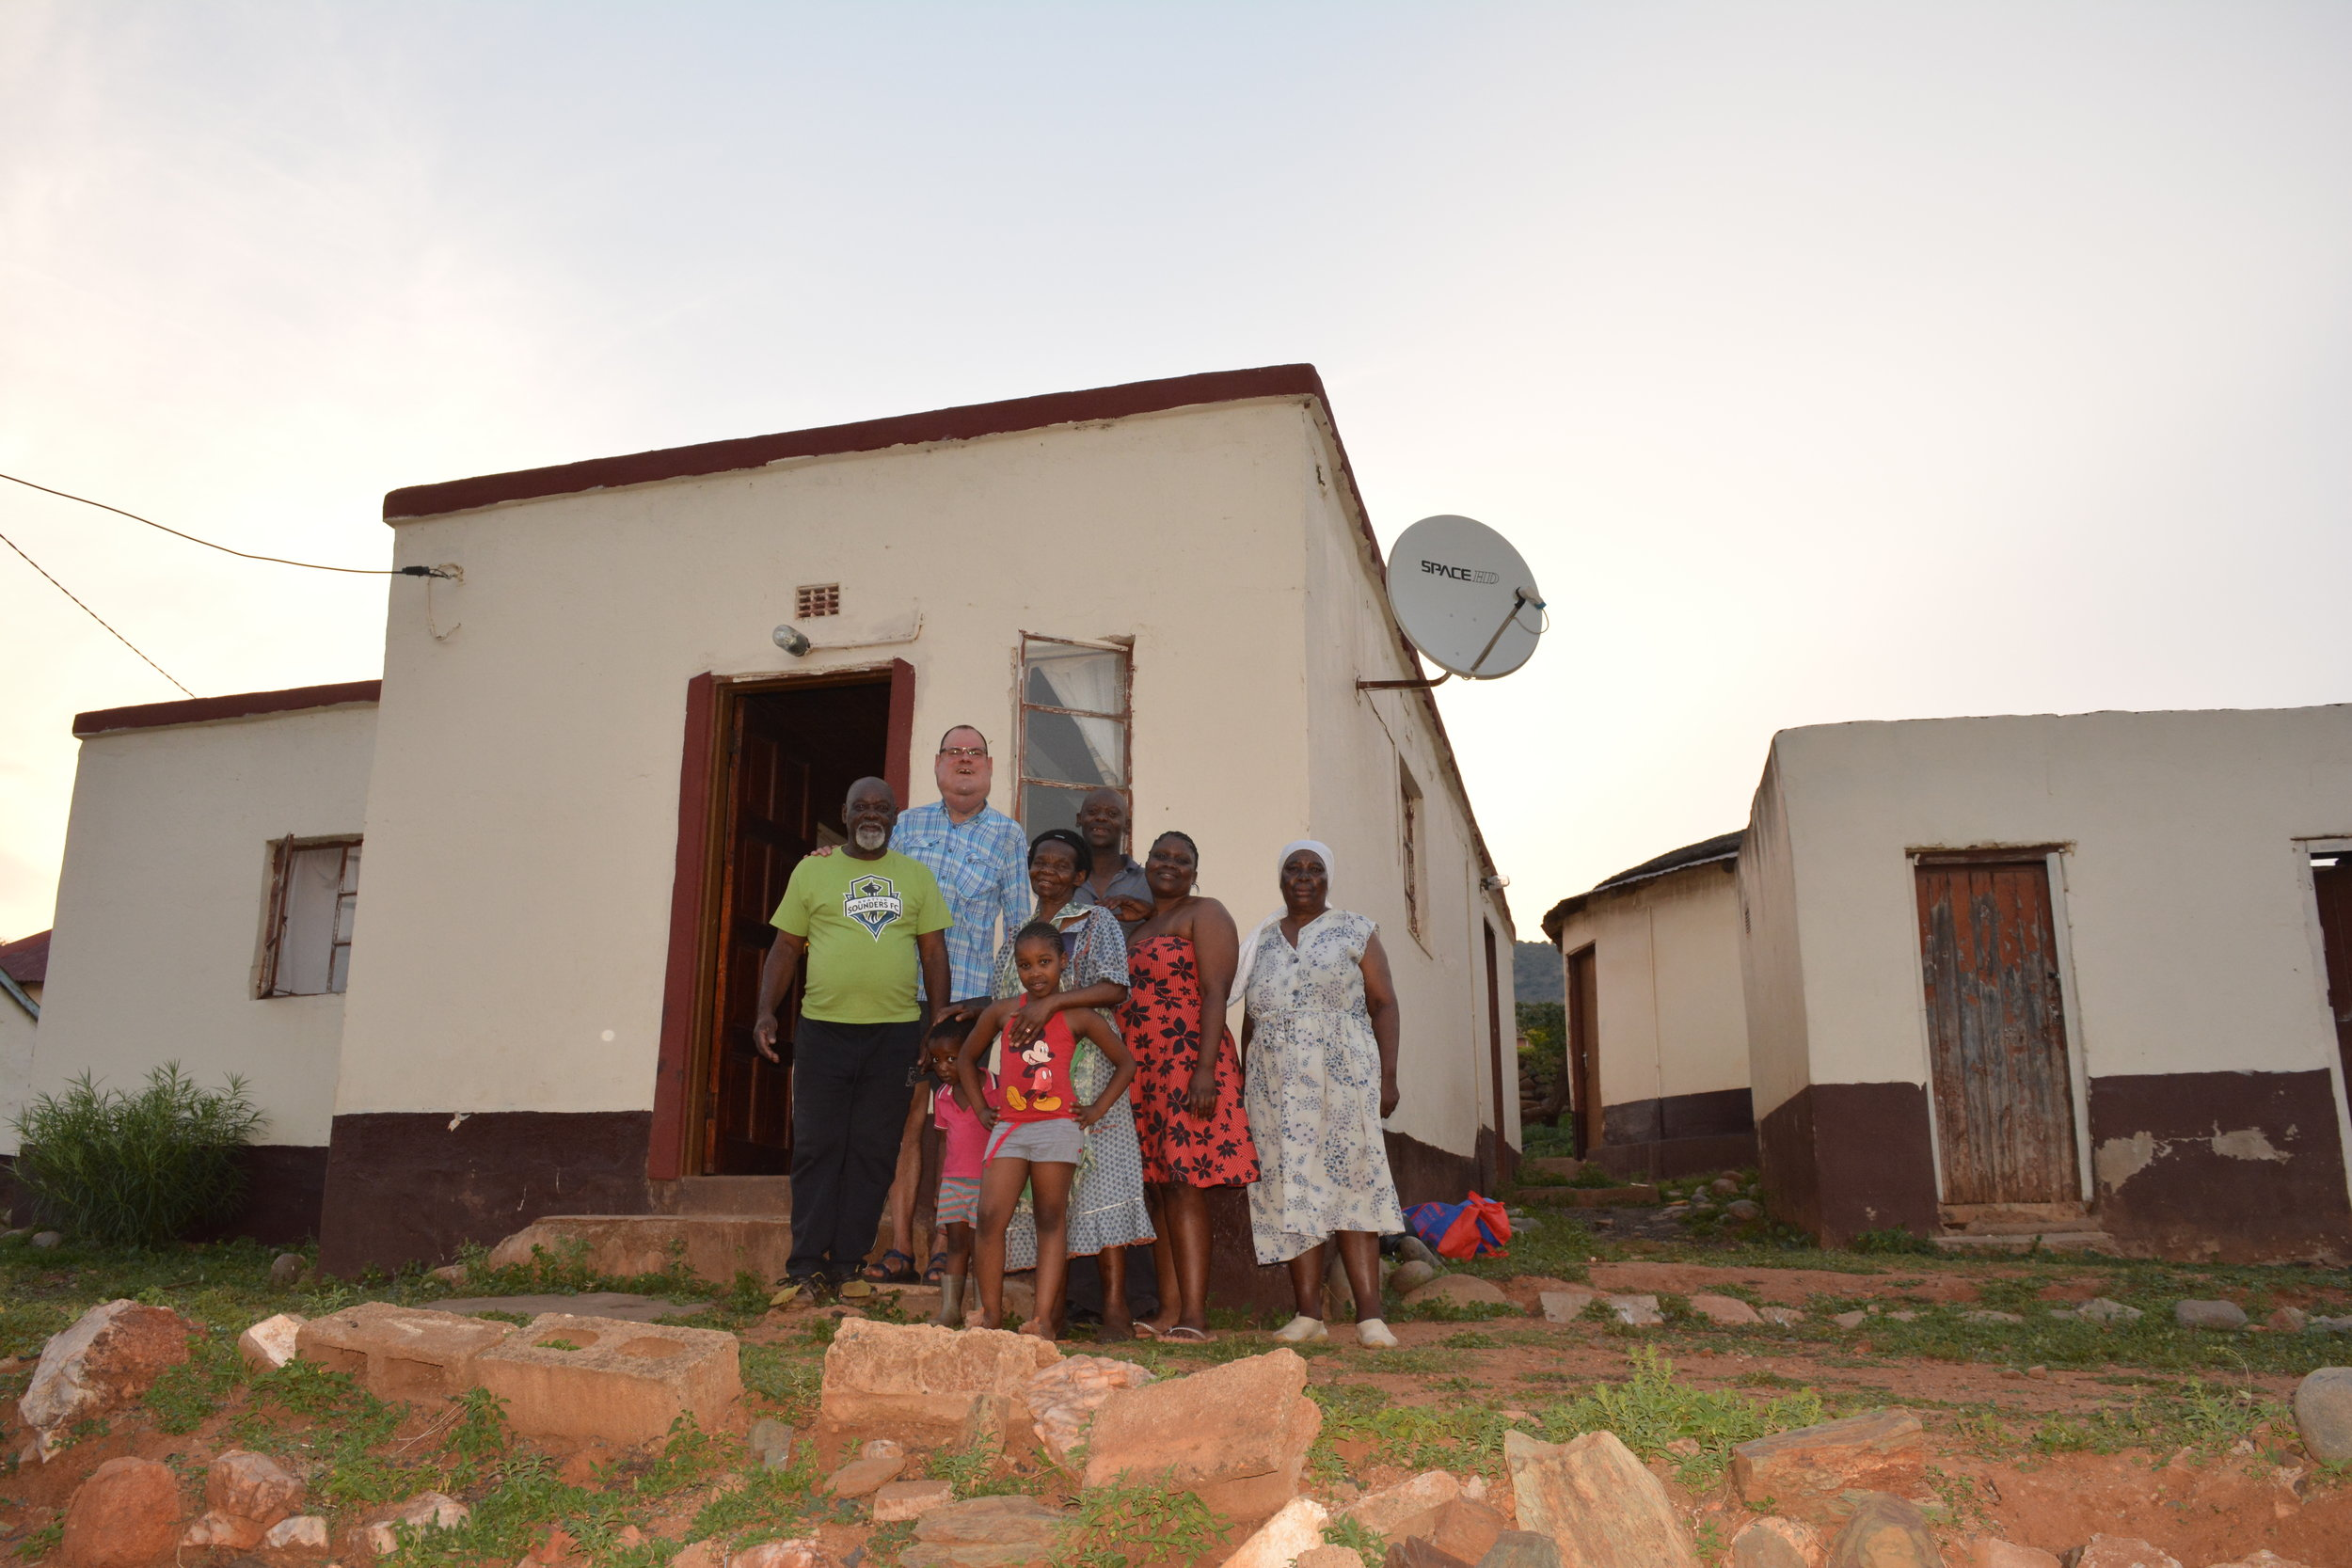 The head induna and his family were gracious hosts.